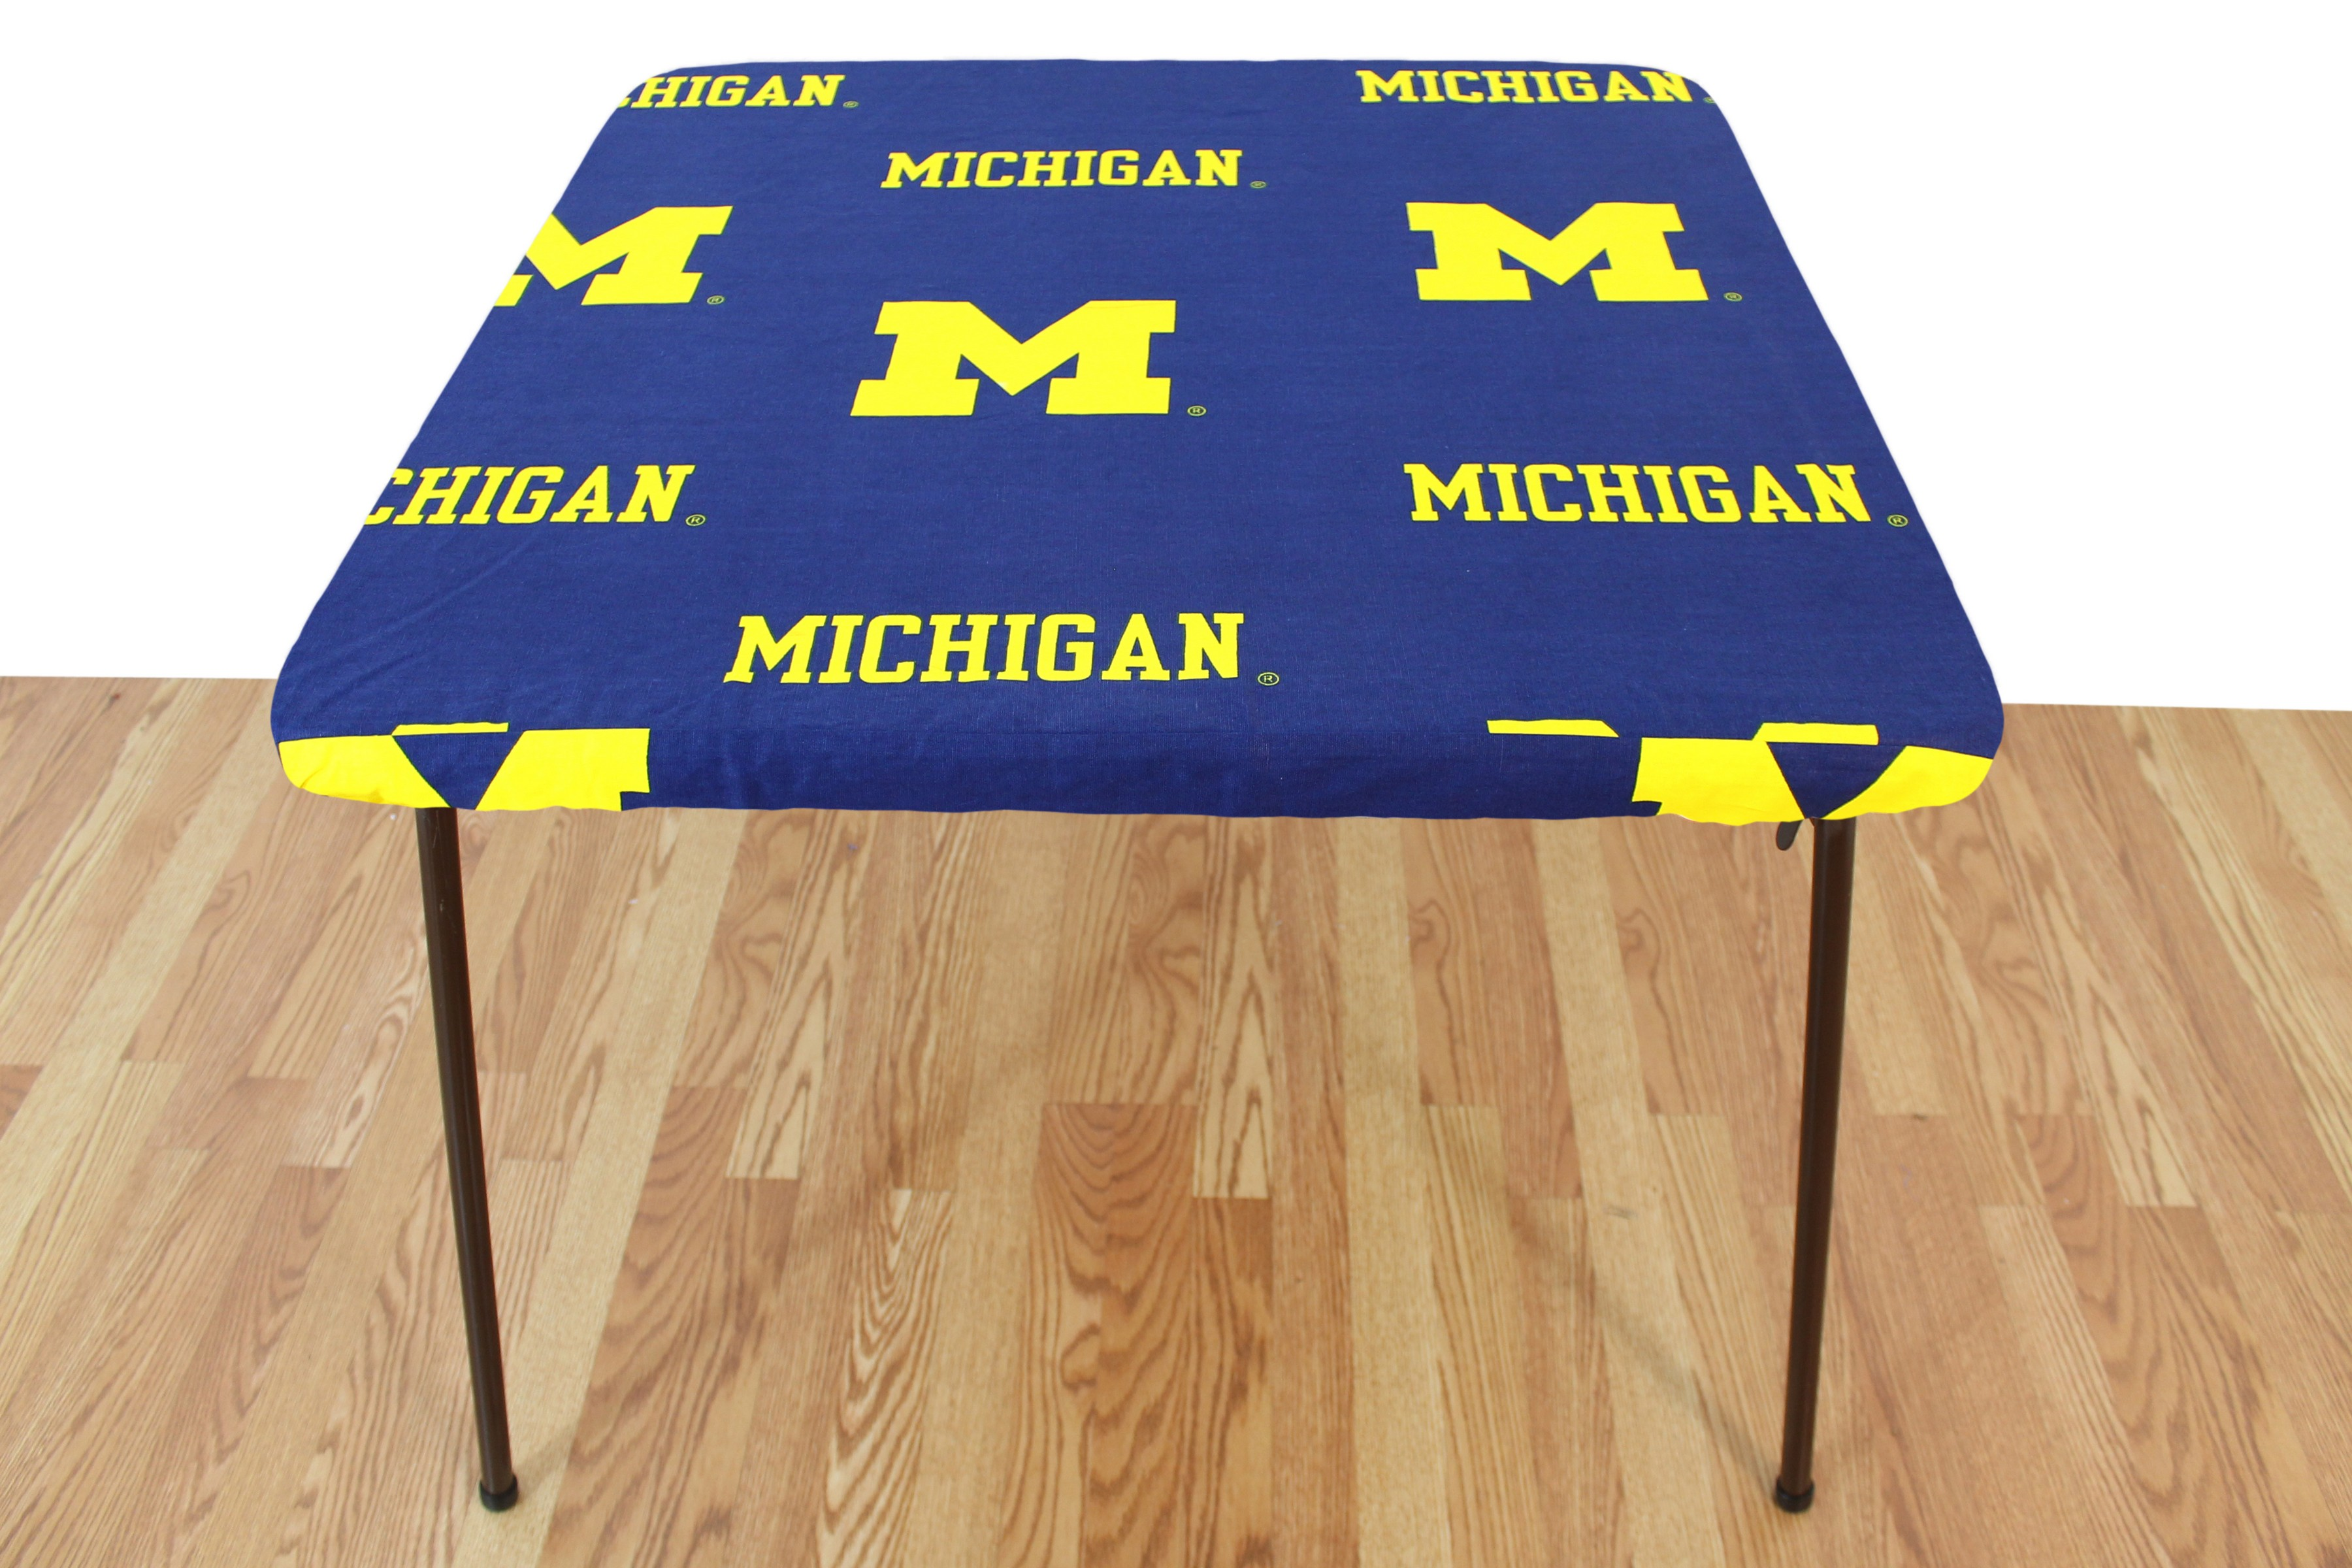 College Covers Fan Shop Michigan Wolverines Fitted Card Table Cover 33 x 33 in by Supplier Generic